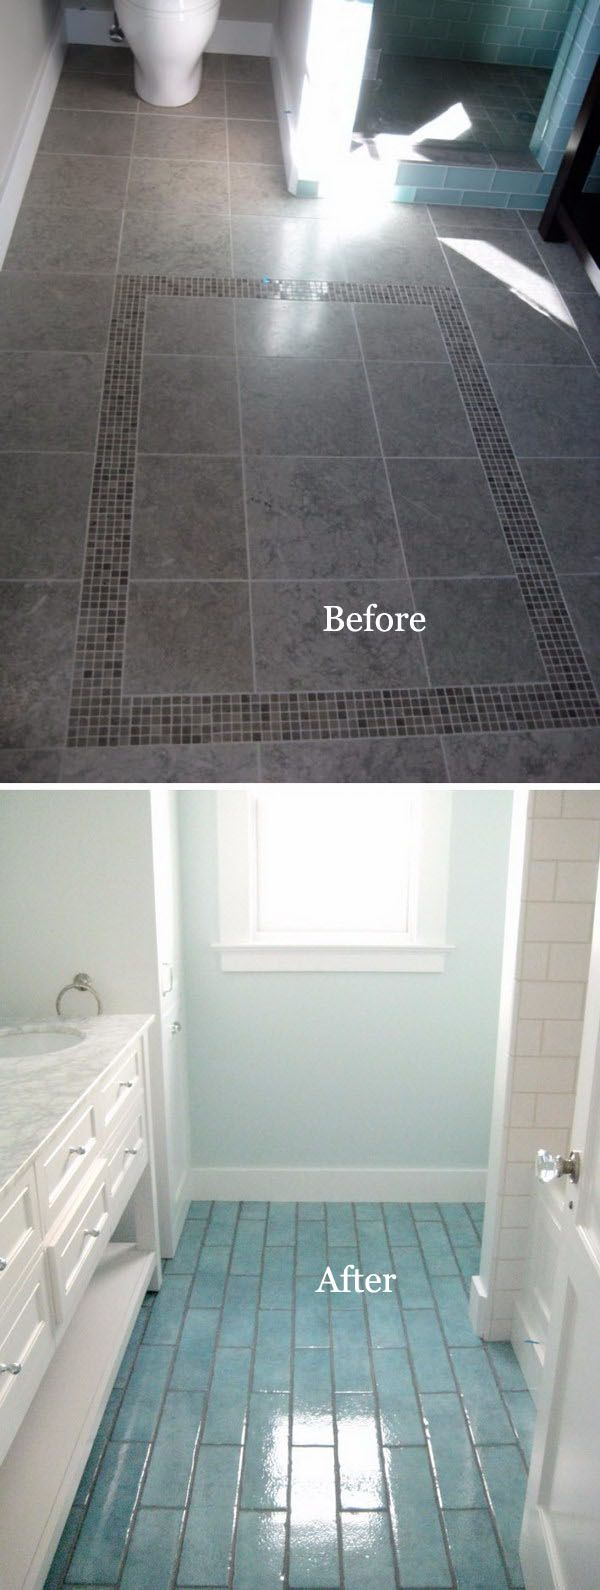 Best 25 blue bathroom tiles ideas on pinterest blue tiles best 25 blue bathroom tiles ideas on pinterest blue tiles moroccan bathroom and moroccan tiles dailygadgetfo Image collections